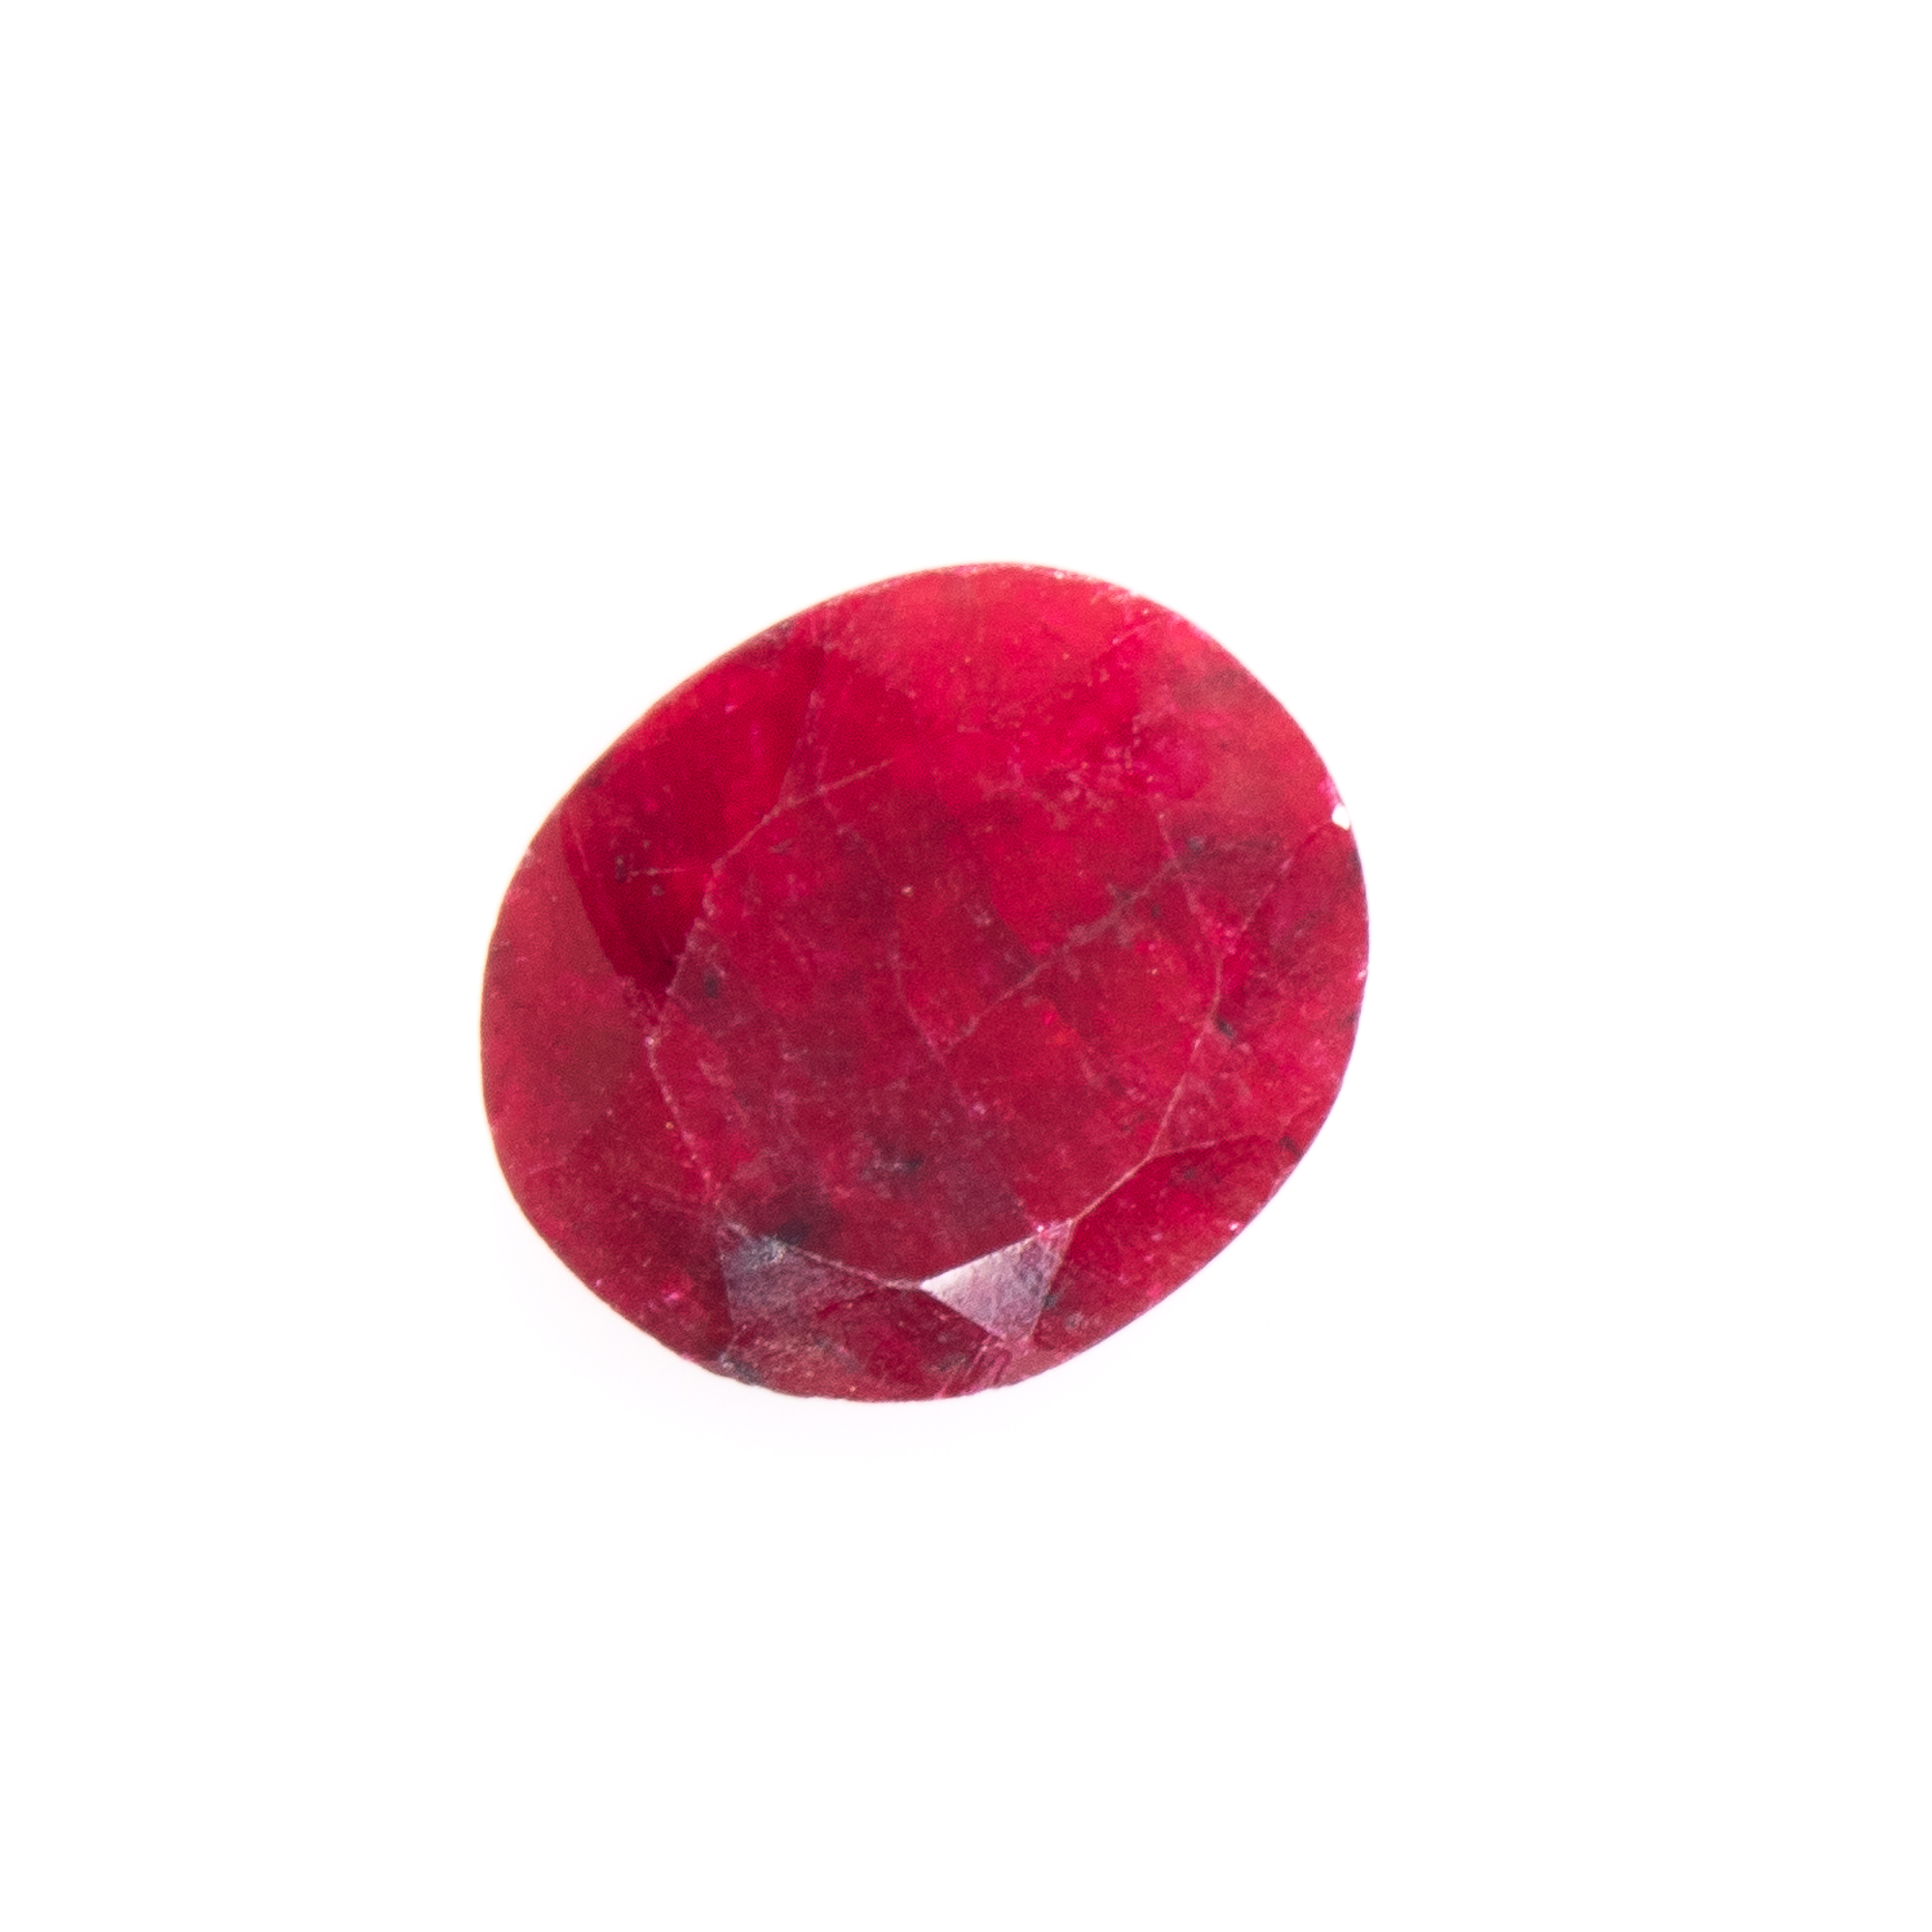 Natural Oval-cut Ruby Gemstone - Image 5 of 6